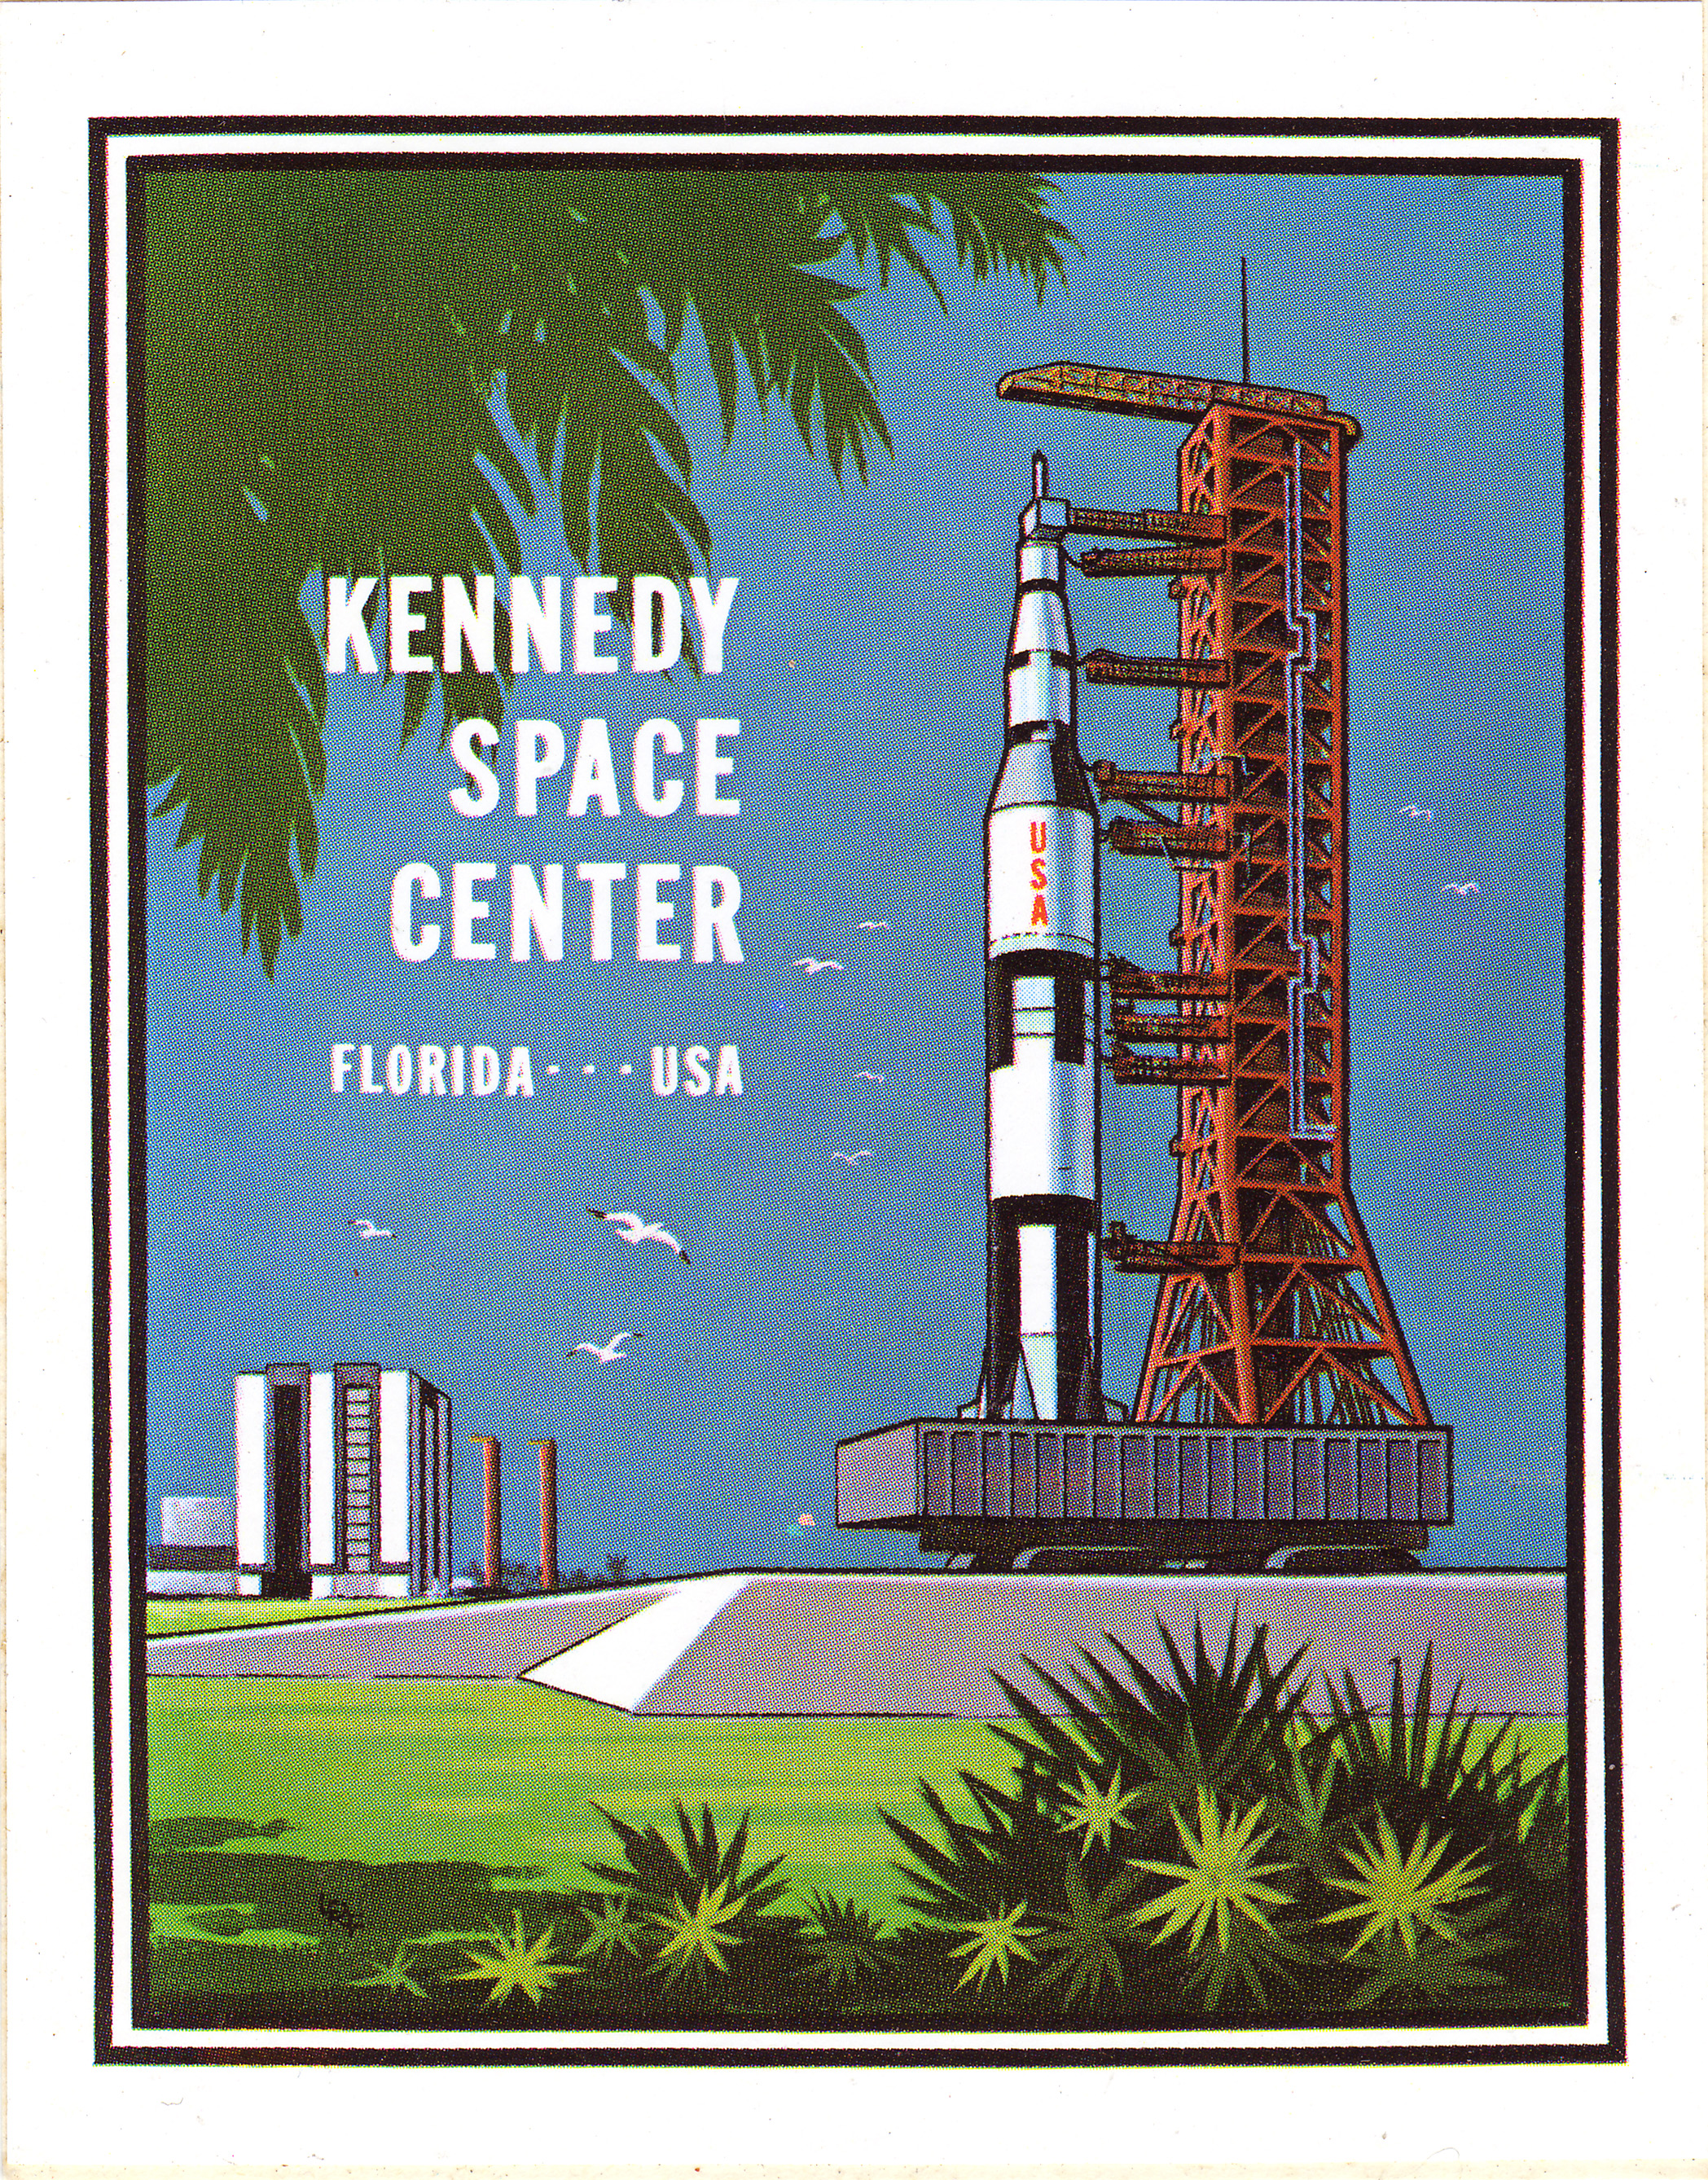 KennedySpace-Sticker.jpg